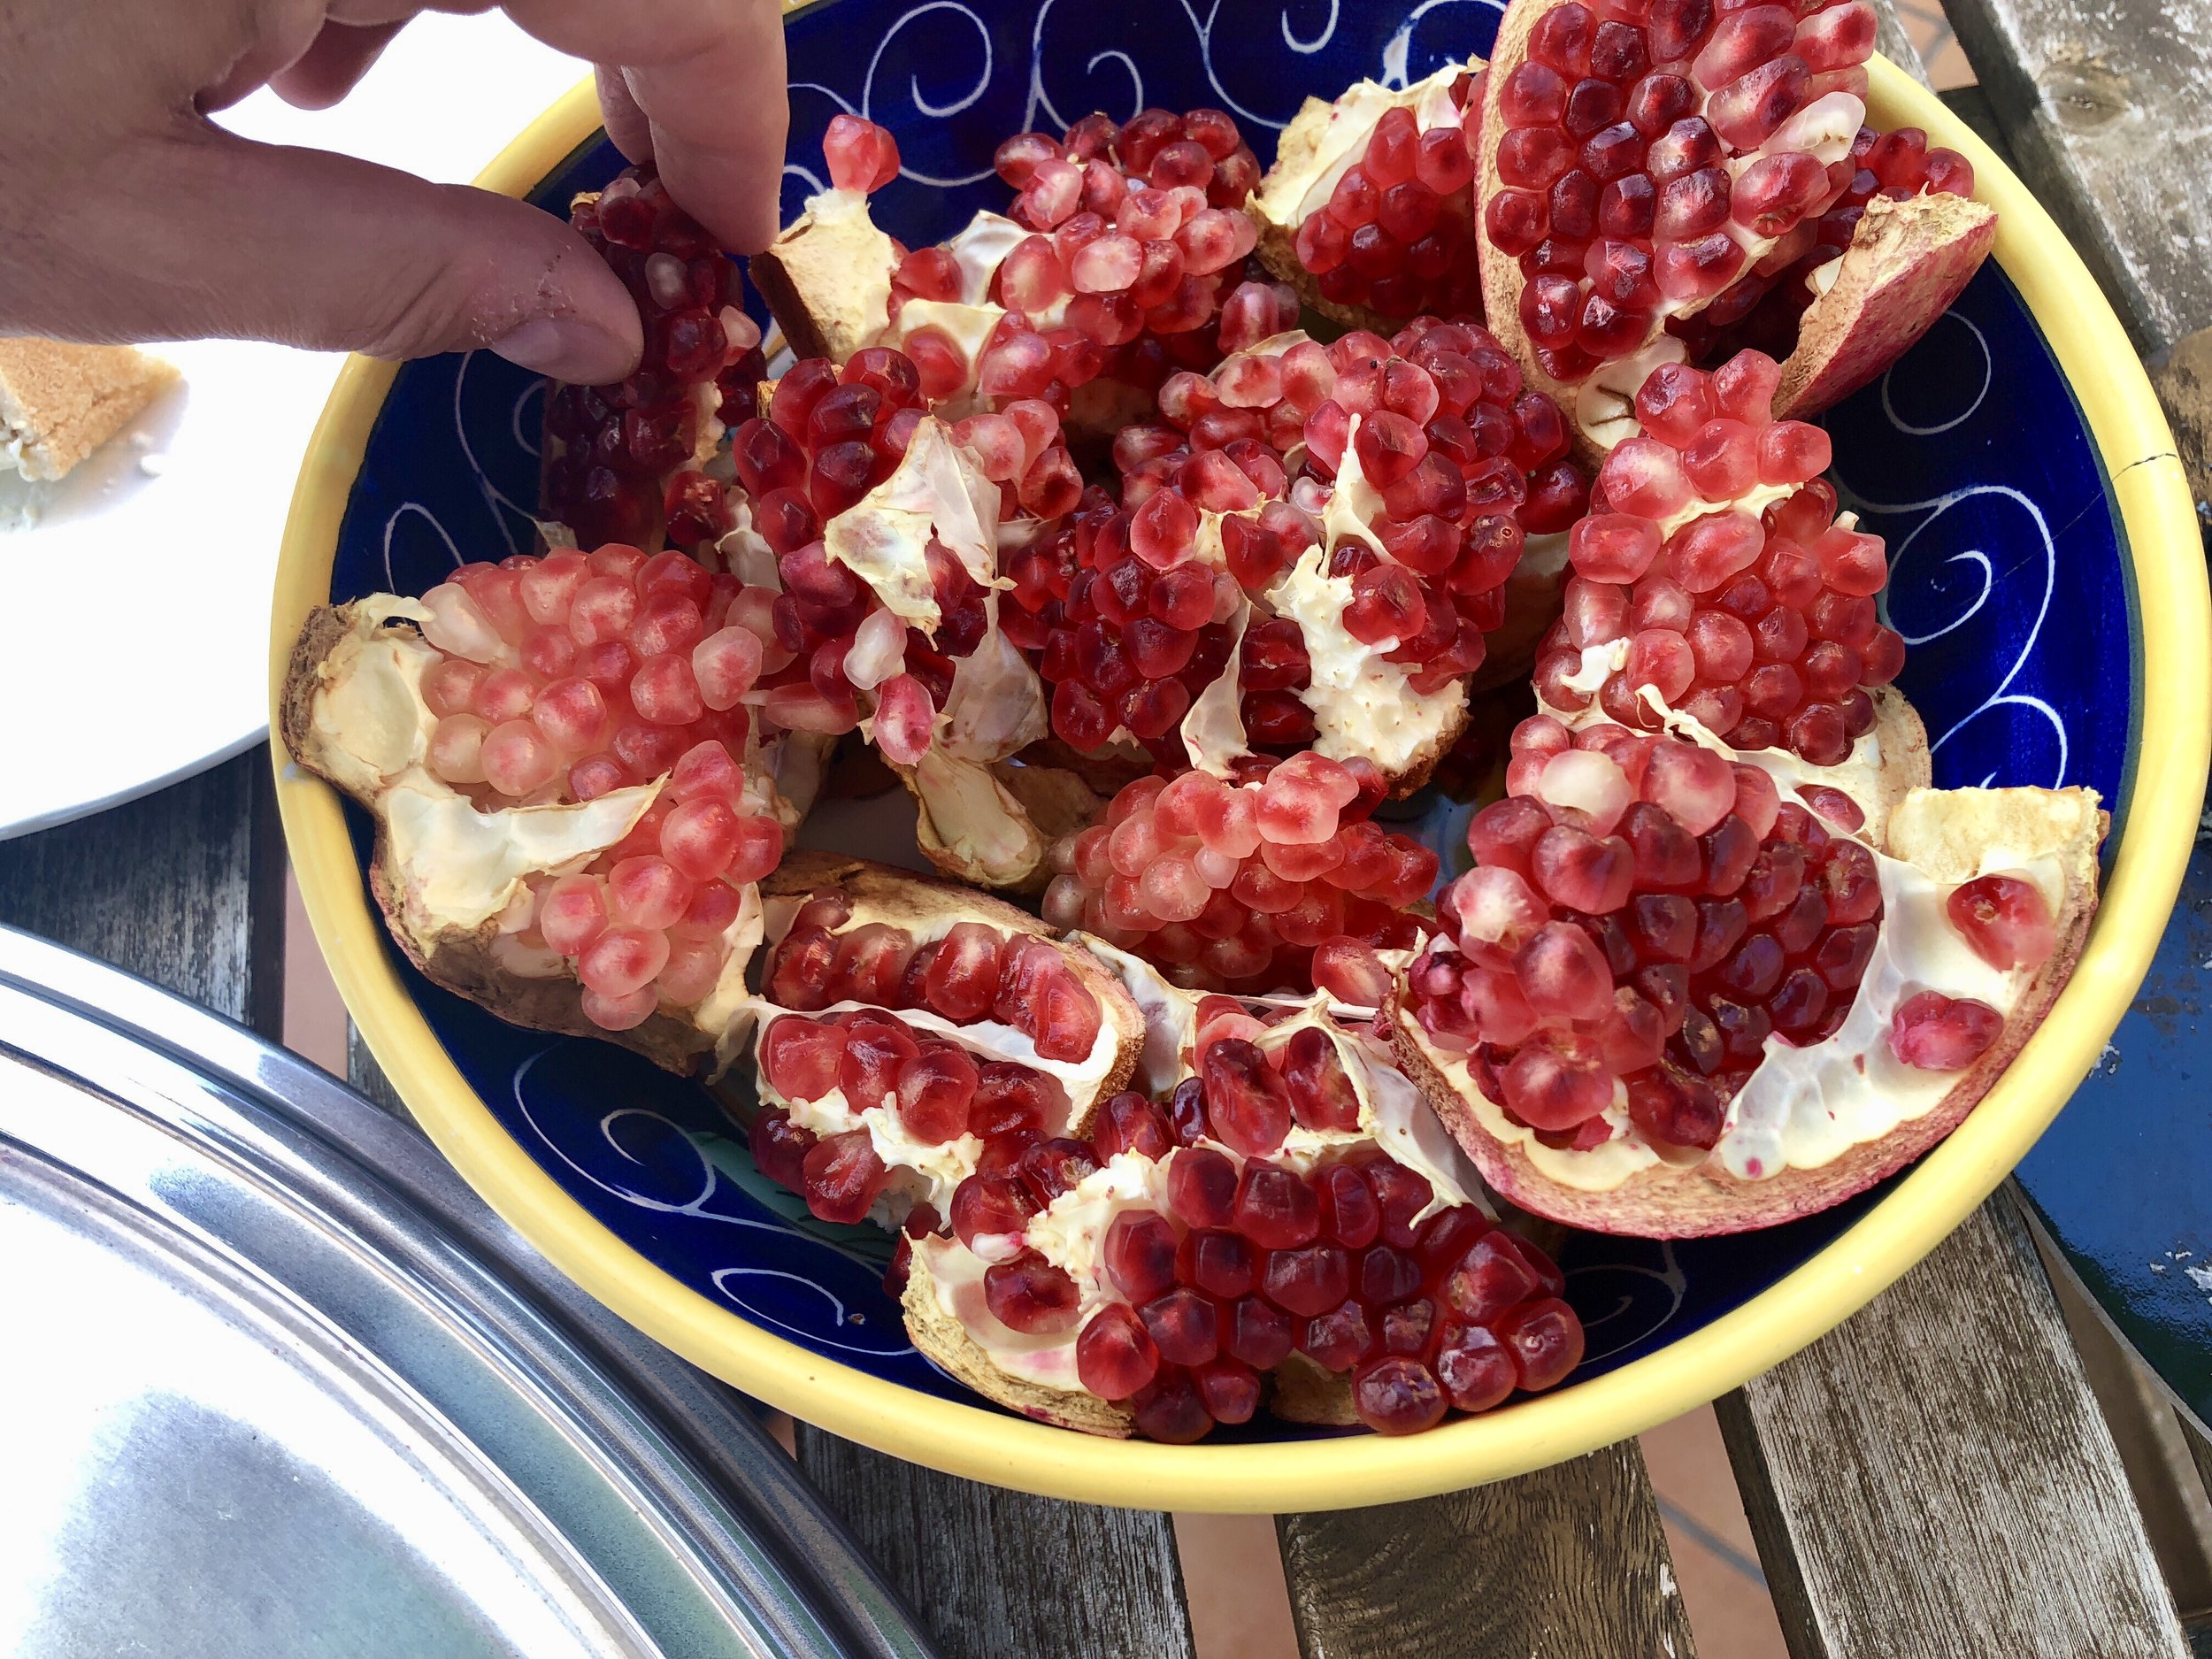 Pomegranates are the signature of the region